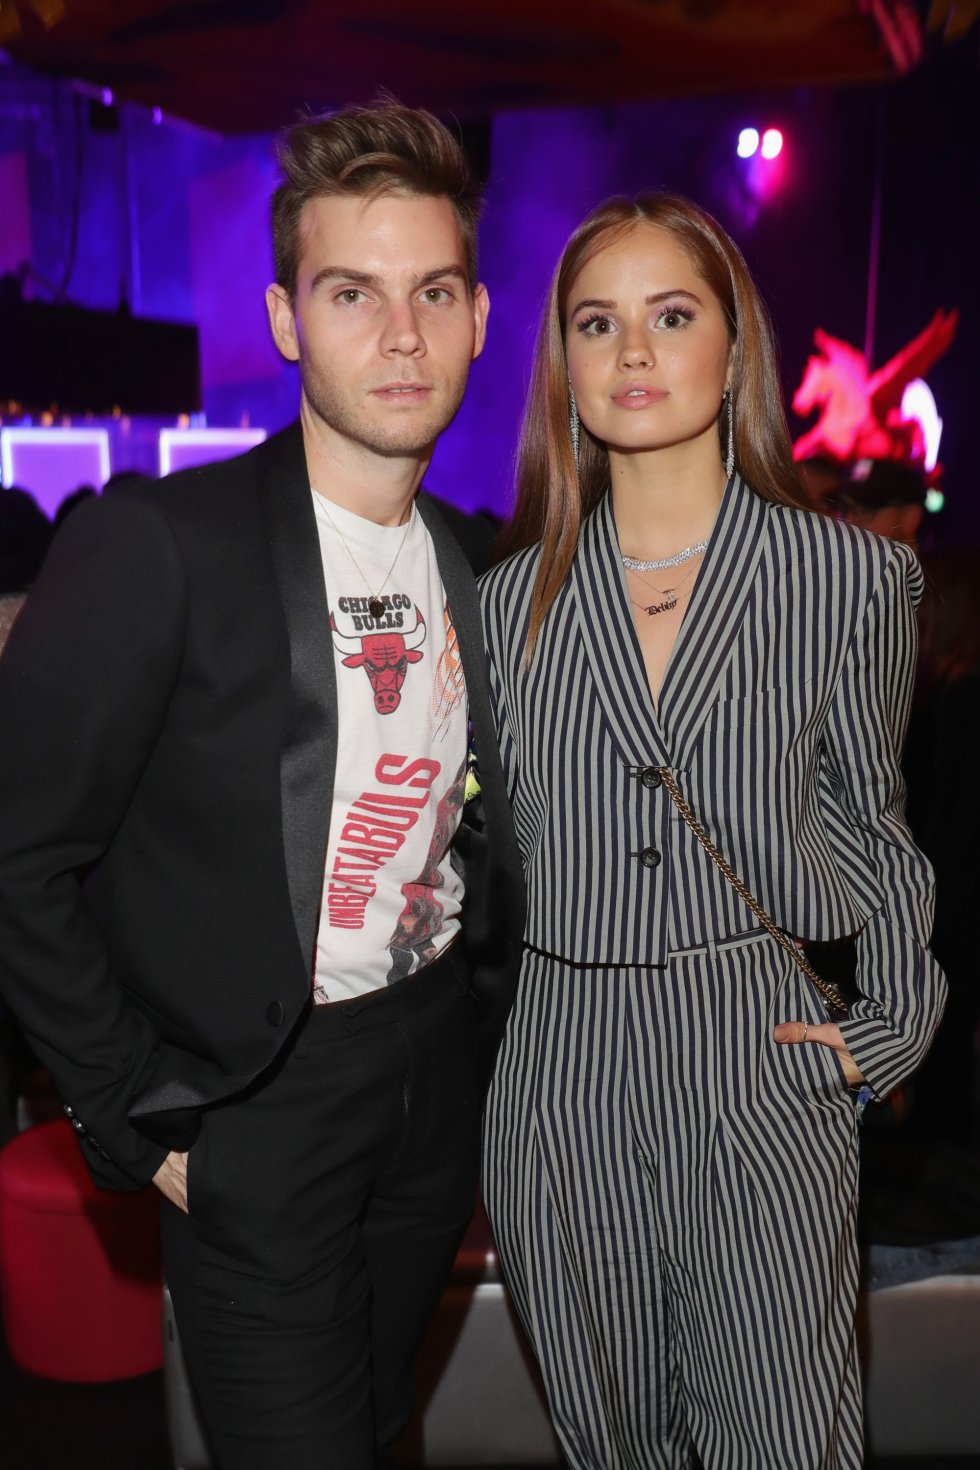 BILBAO, SPAIN - NOVEMBER 04:  Debby Ryan (R) and a guest attend the MTV EMAs 2018 after show party at Bilbao Exhibition Centre on November 4, 2018 in Bilbao, Spain.  (Photo by Andreas Rentz/Getty Images for MTV)